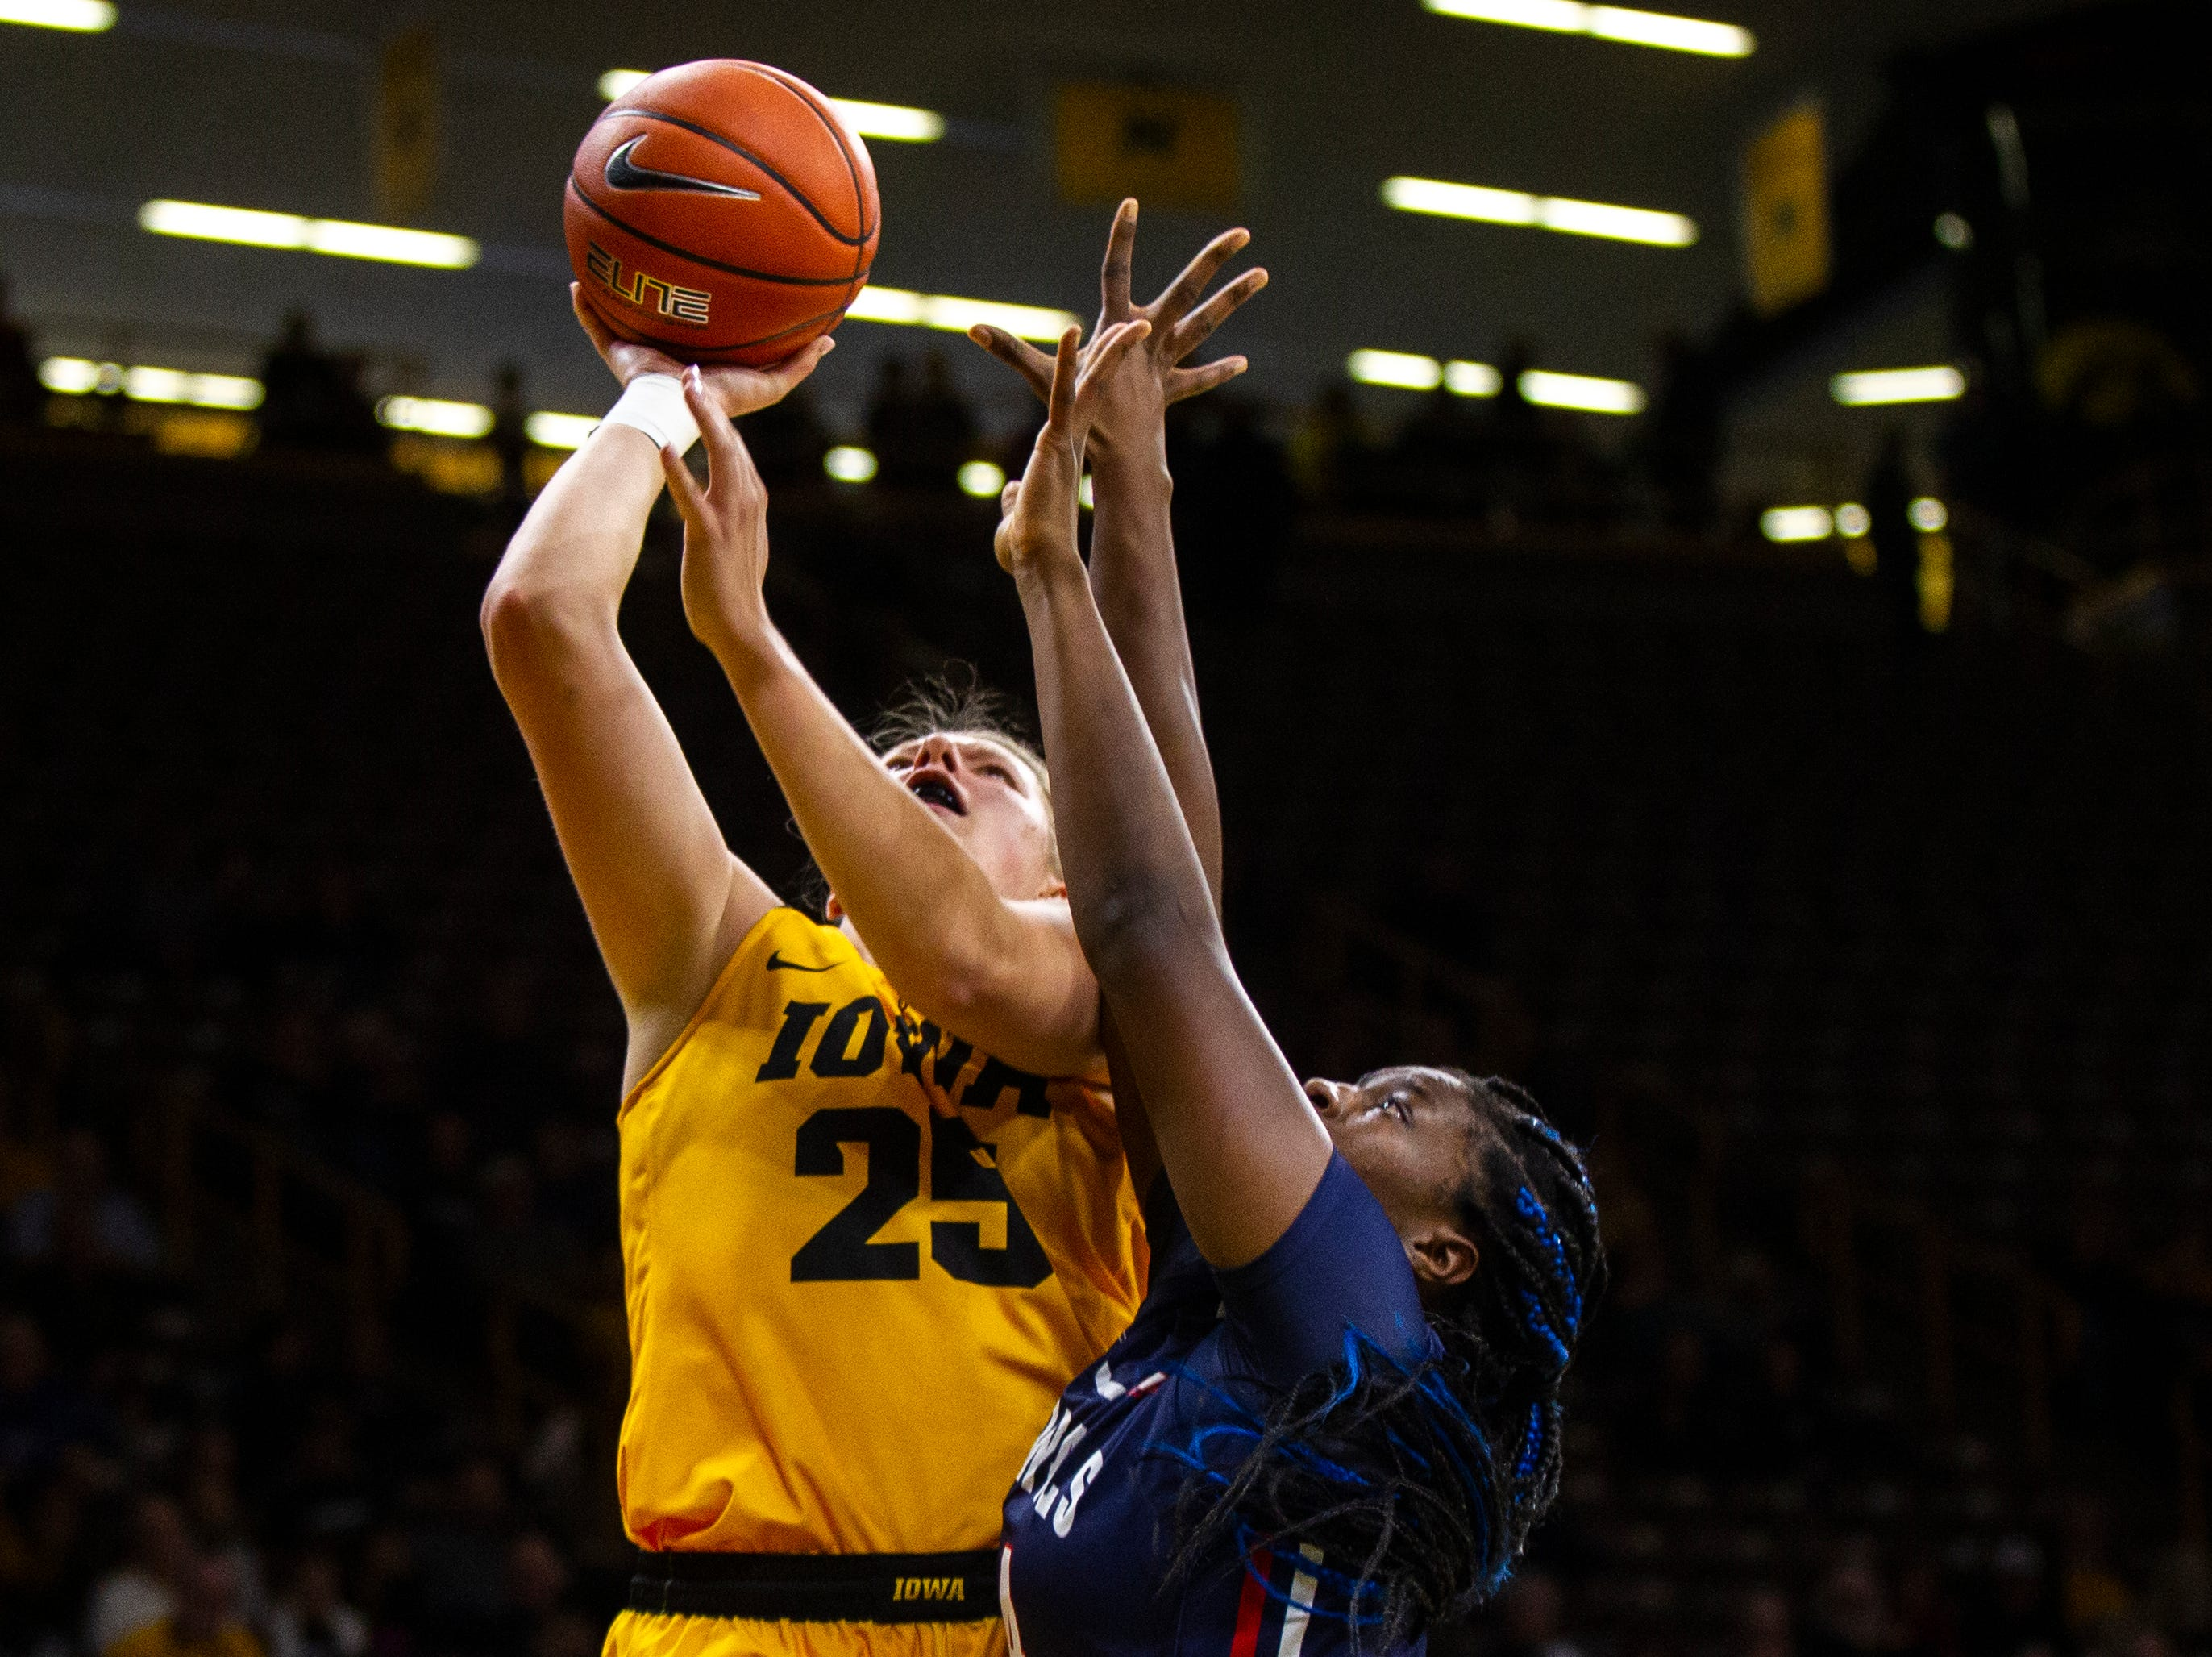 Iowa's Monika Czinano (25) makes a basket during a NCAA women's basketball game on Sunday, Dec. 2, 2018, at Carver-Hawkeye Arena in Iowa City.